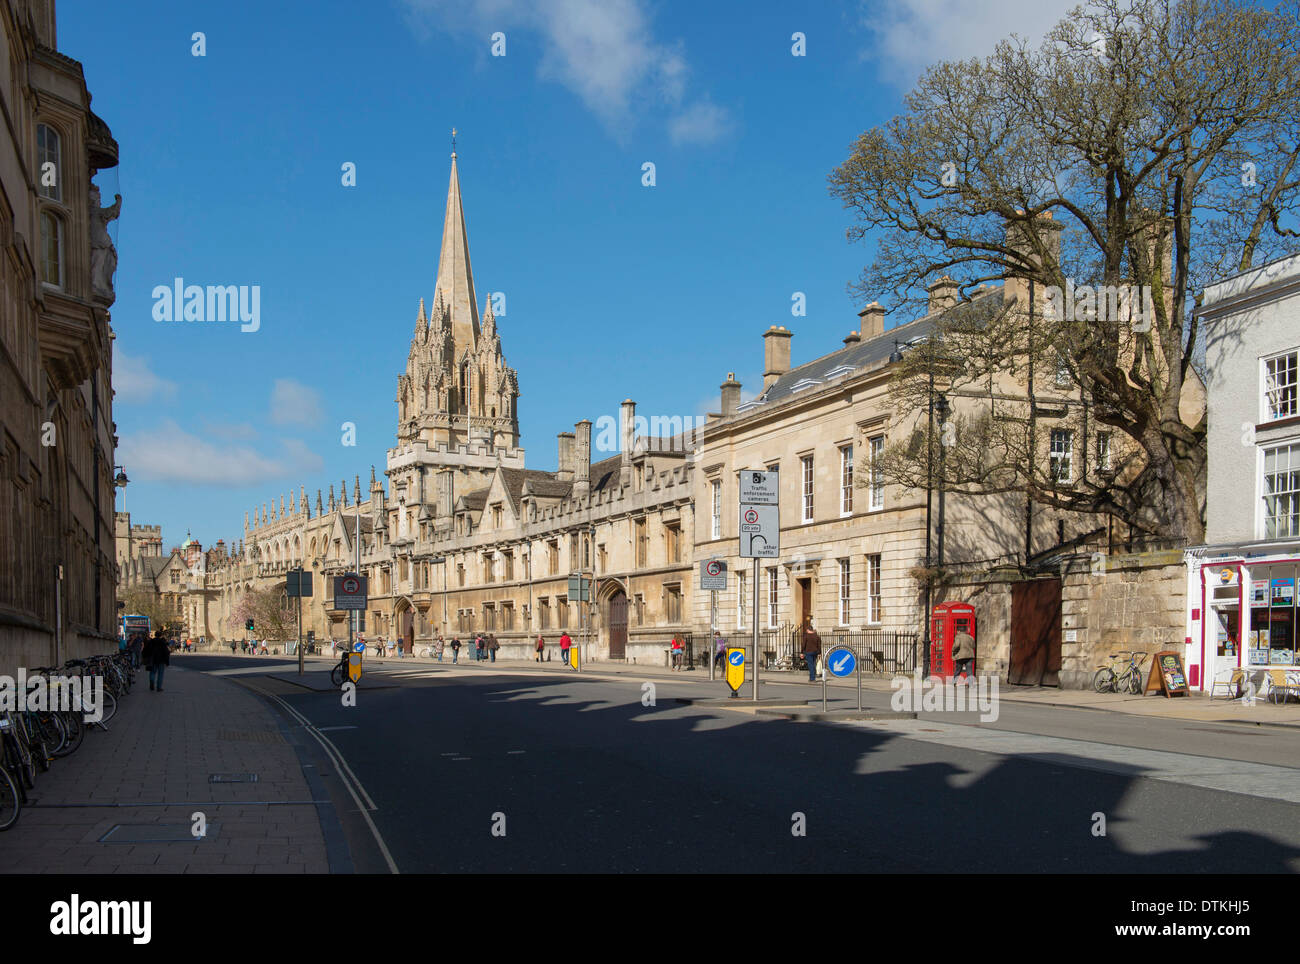 University Church of St Mary The Virgin in the High Street Oxford - Stock Image